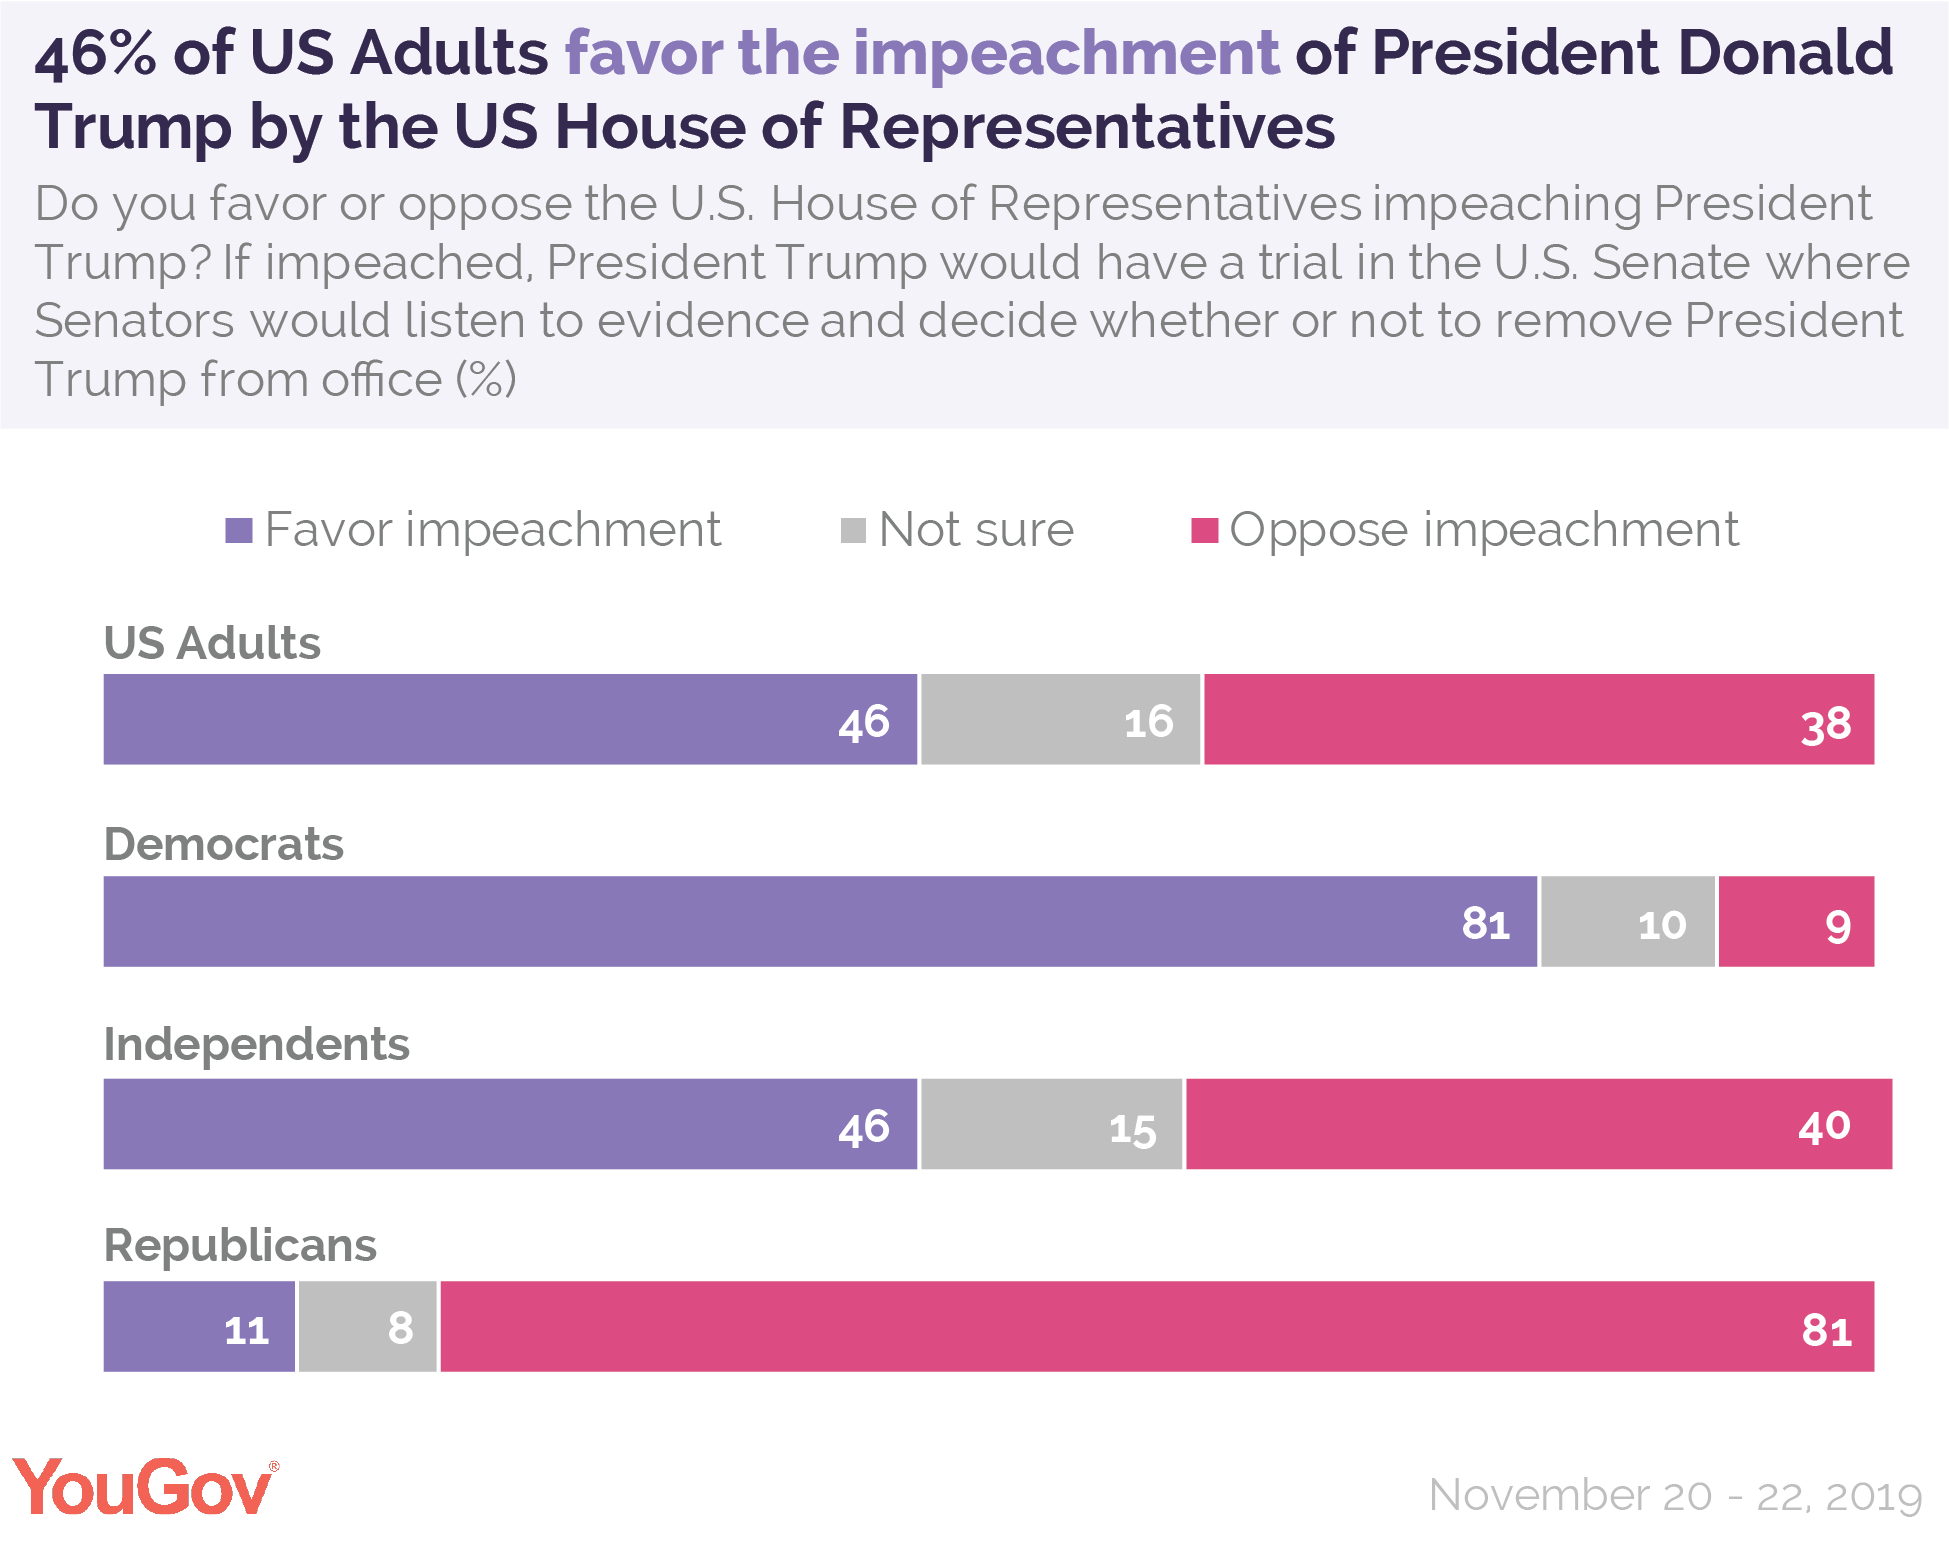 46% of US Adults favor the impeachment of President Donald Trump by the US House of Representatives